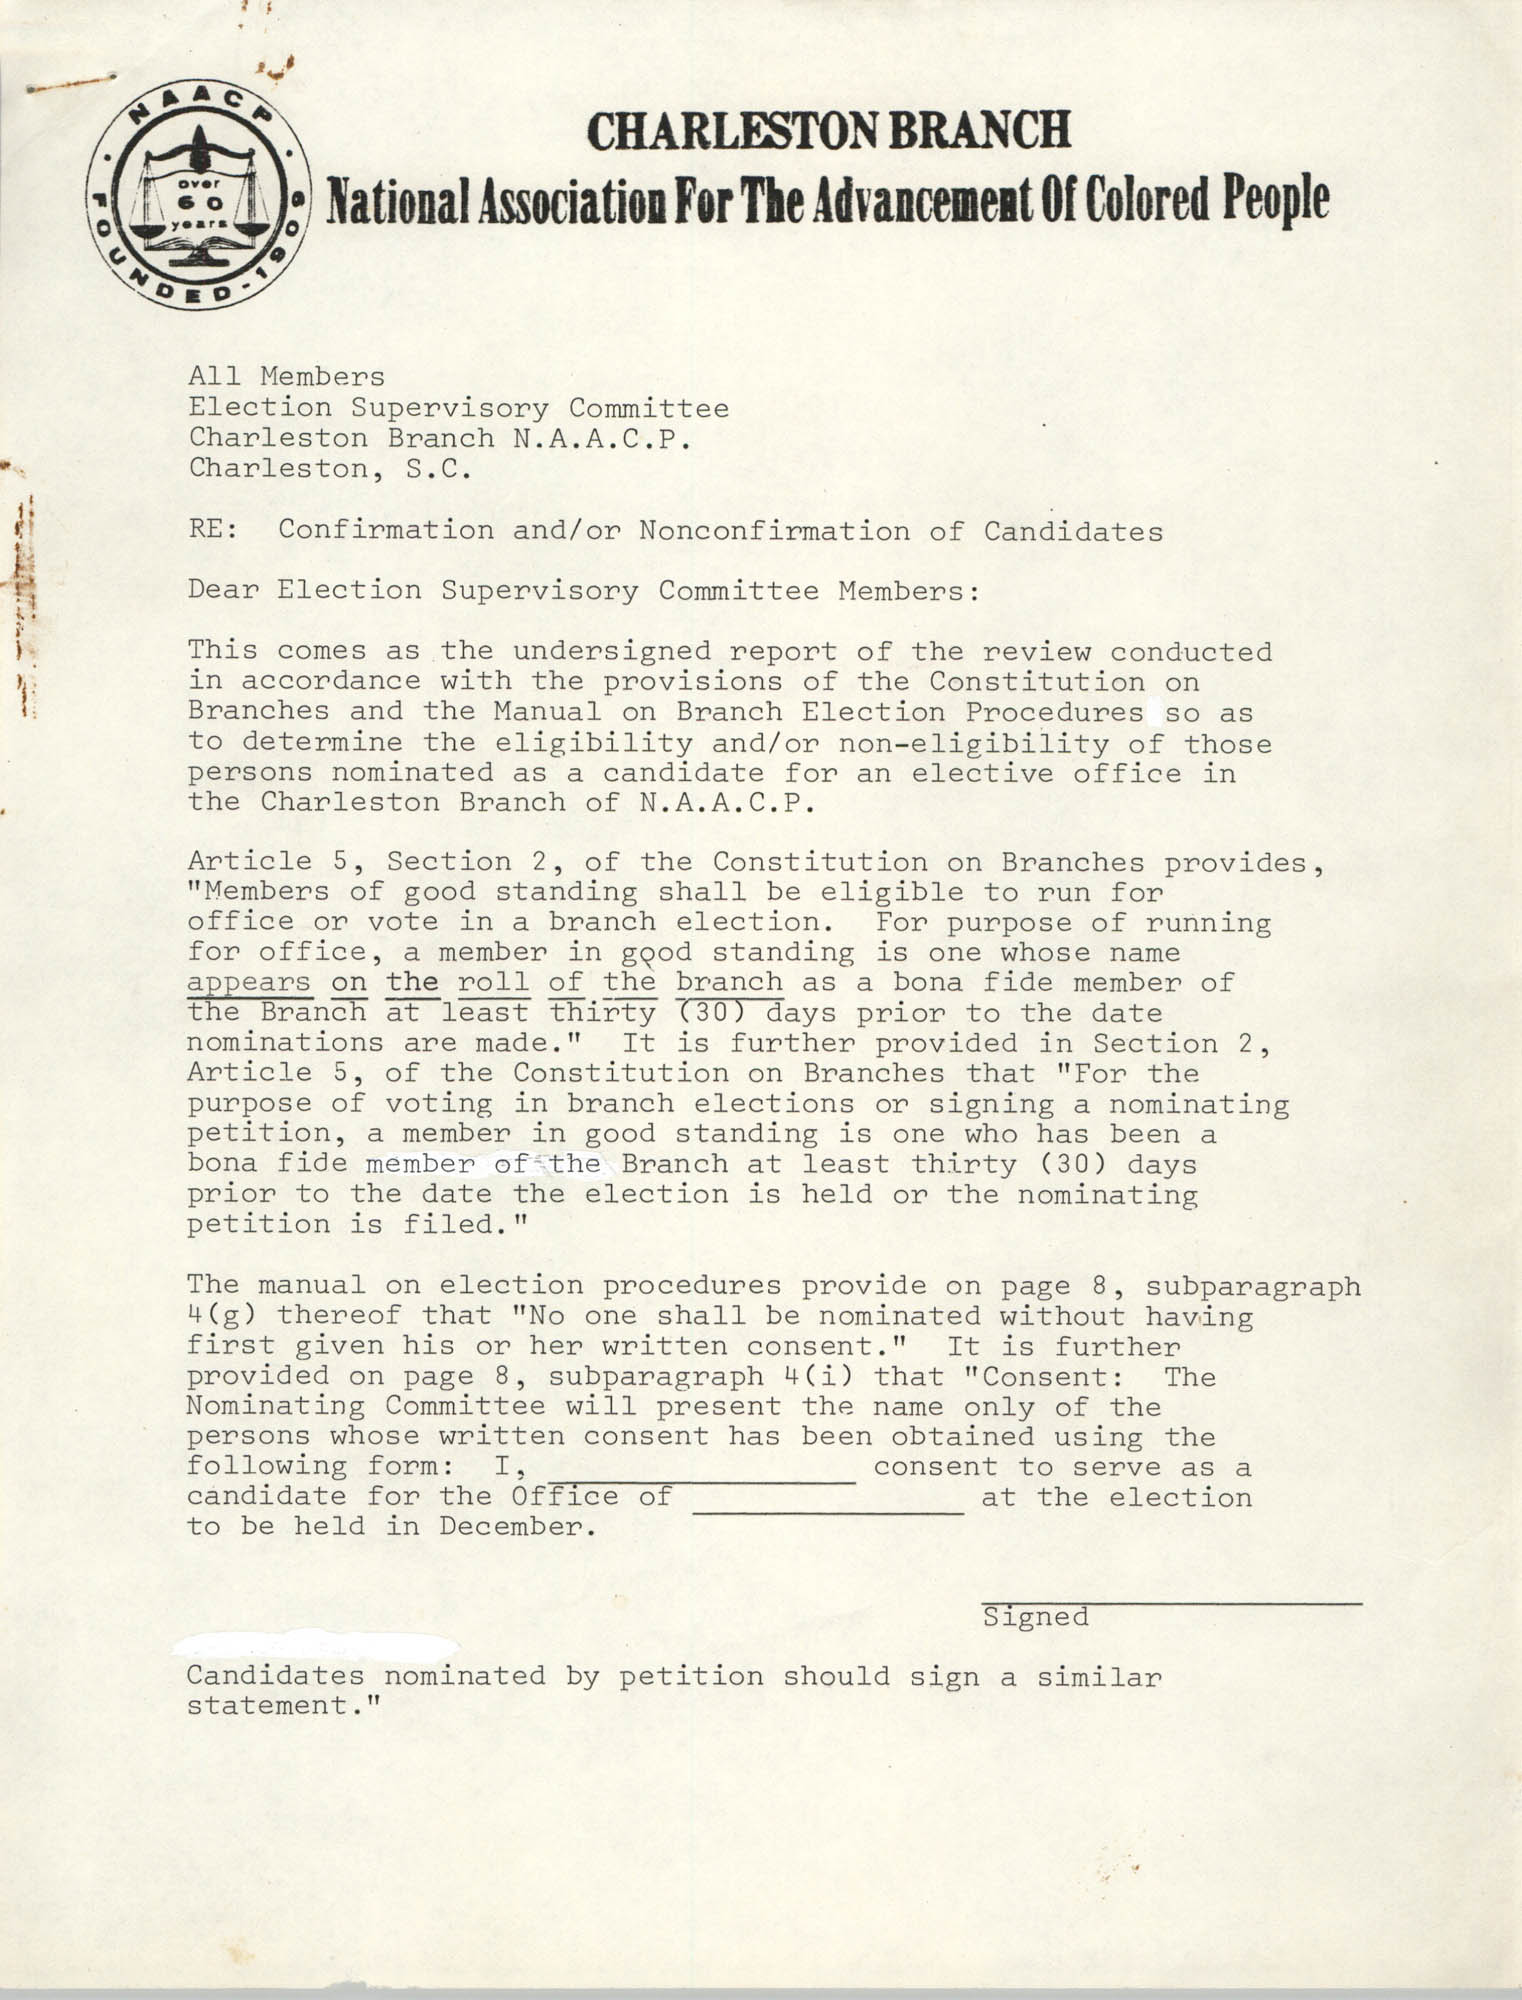 Charleston Branch of the NAACP Memorandum, December 3, 1980